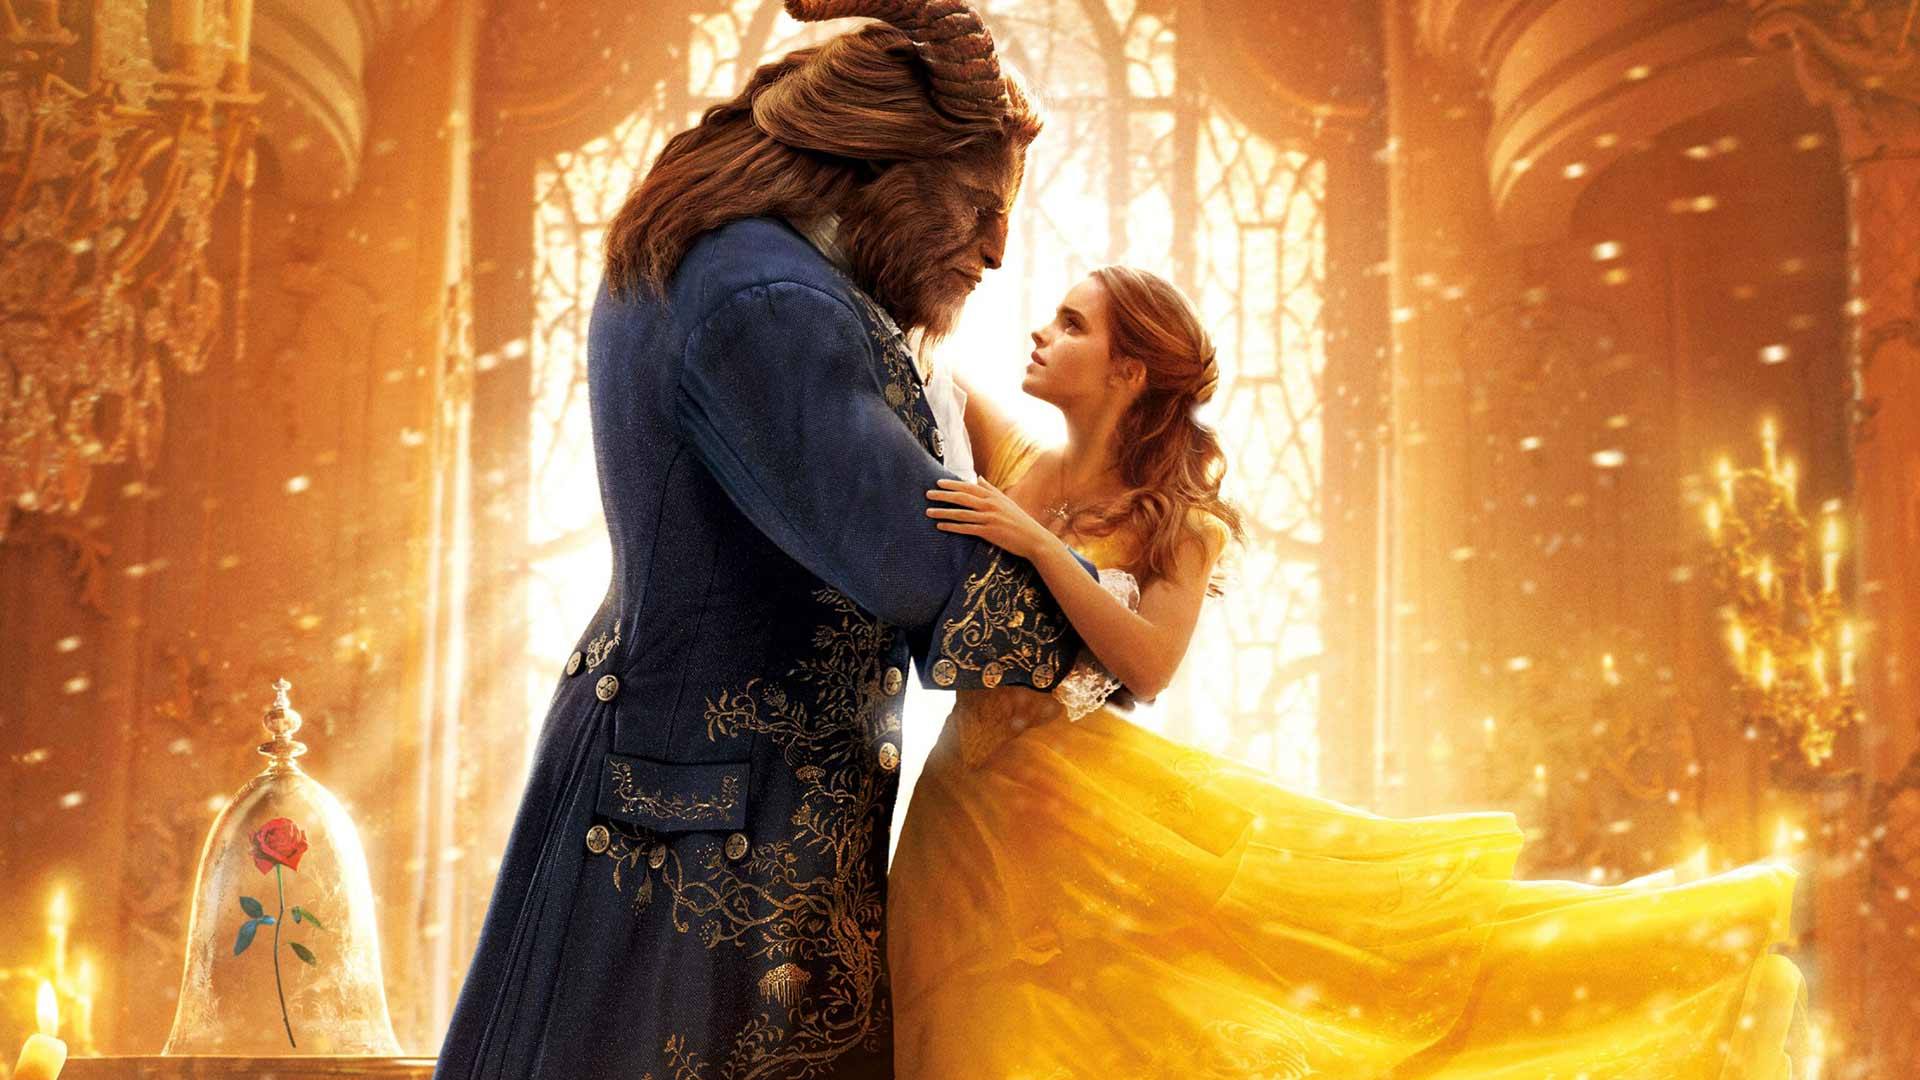 Beauty And The Beast 2017 Review Movies4kids